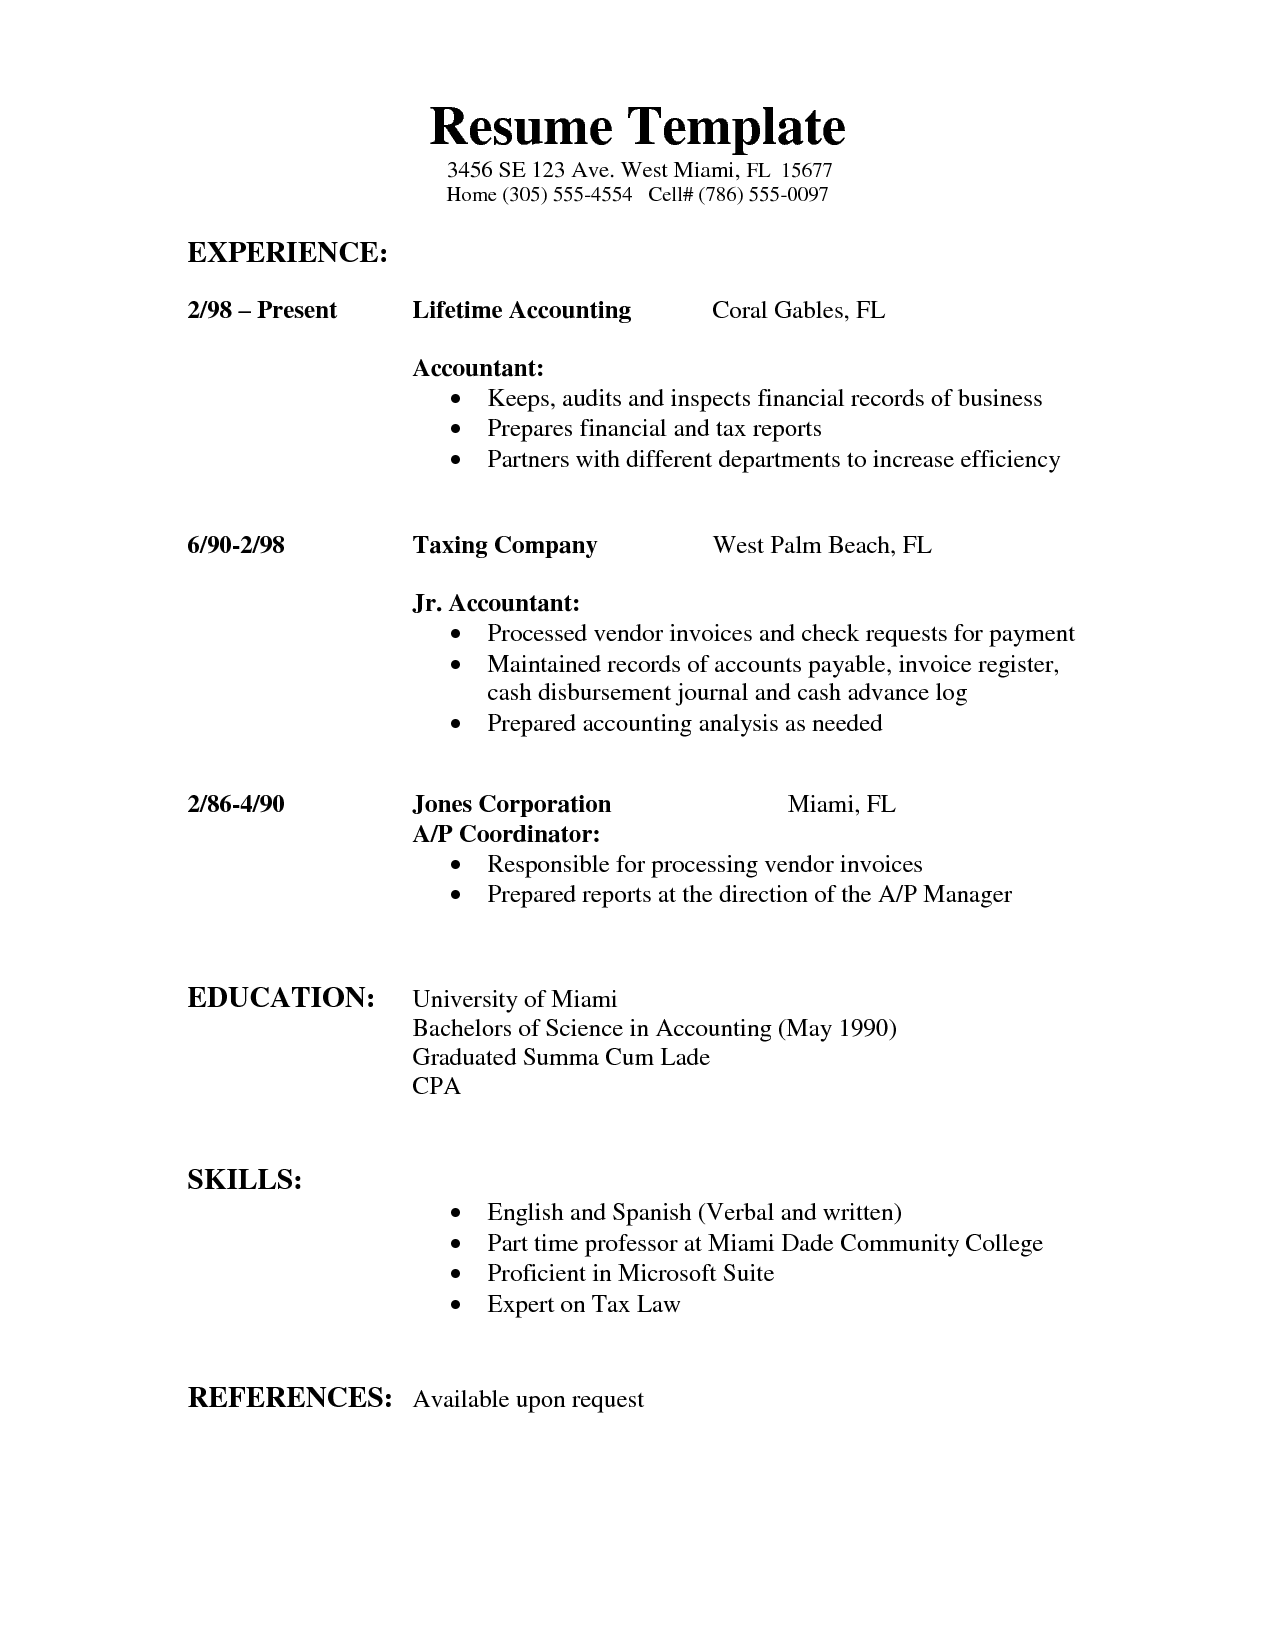 Resumes  Resume Examples  Projects To Try    Resume